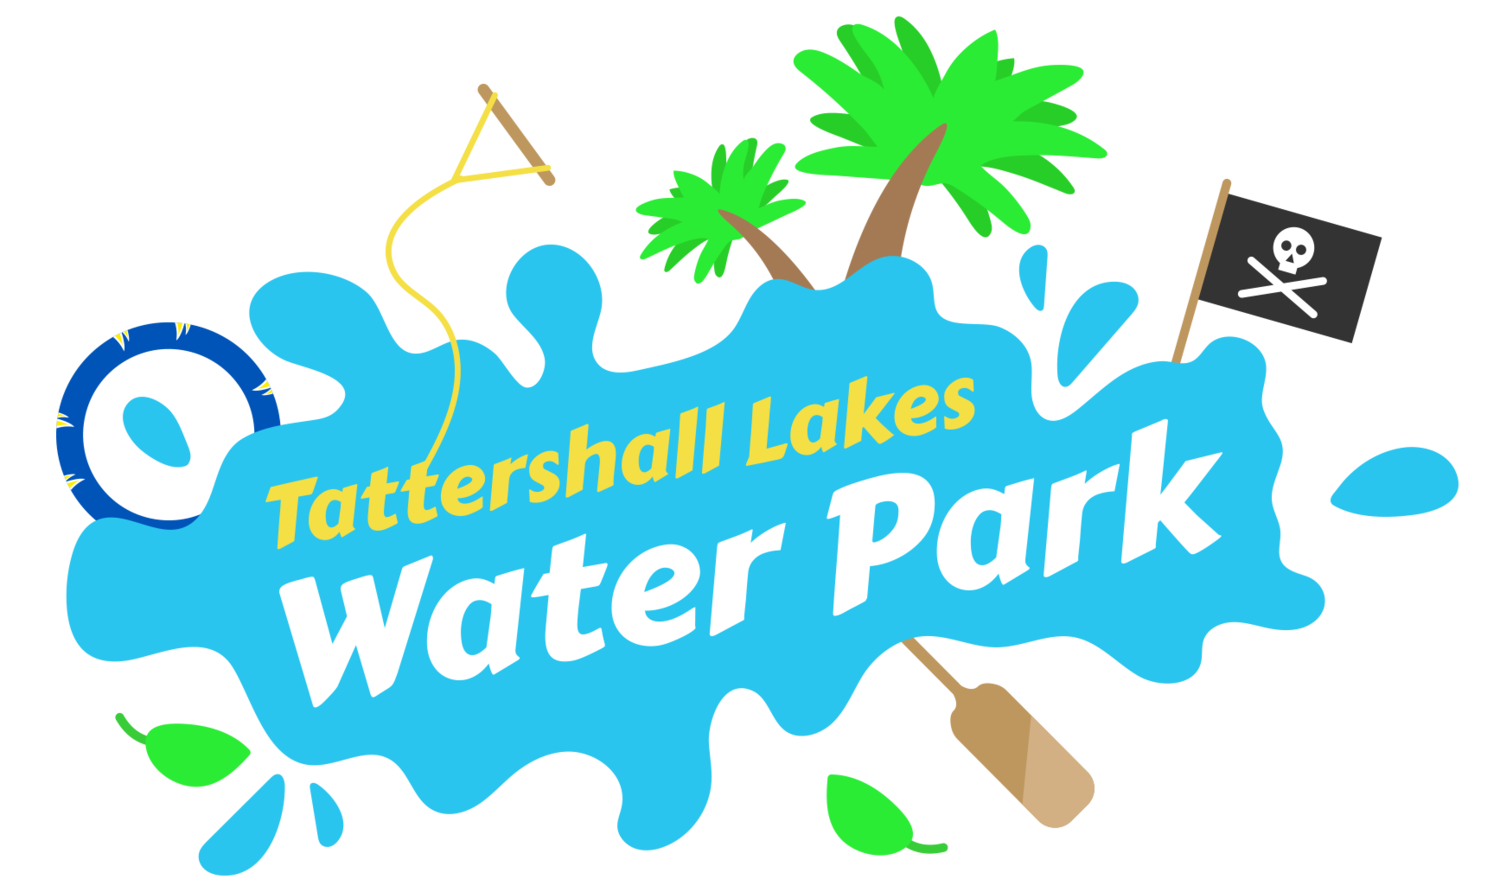 Tattershall Lakes Water Park, Cable and Aqua Park, Lincolnshire